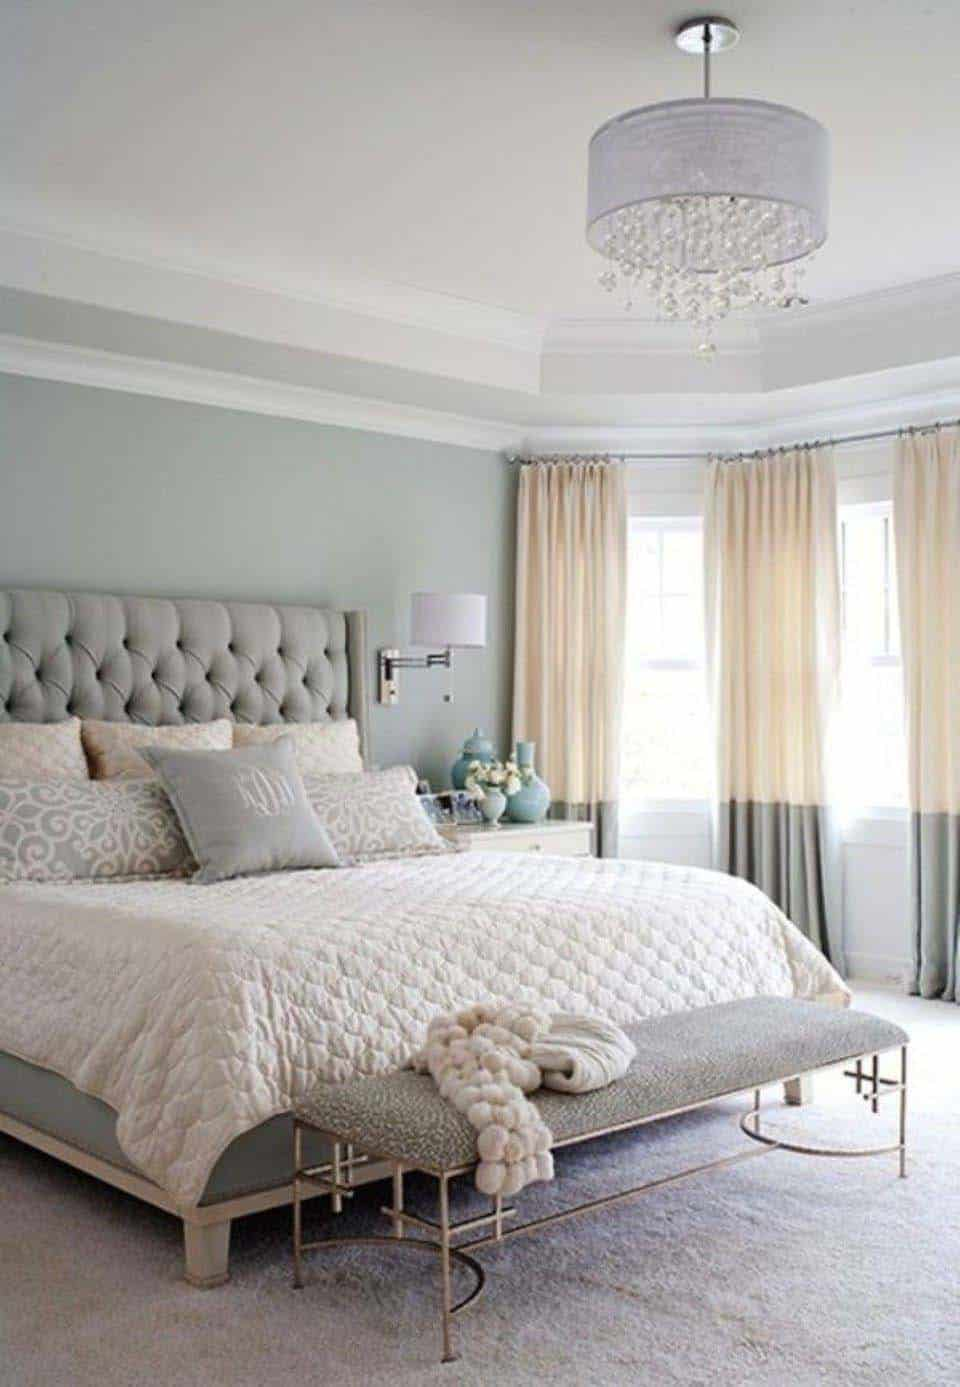 This Master Bedroom Is Filled With A Layering Of Textures In A Soothing Color  Scheme. A Tufted Headboard Is Complimented With Plush Bedding.